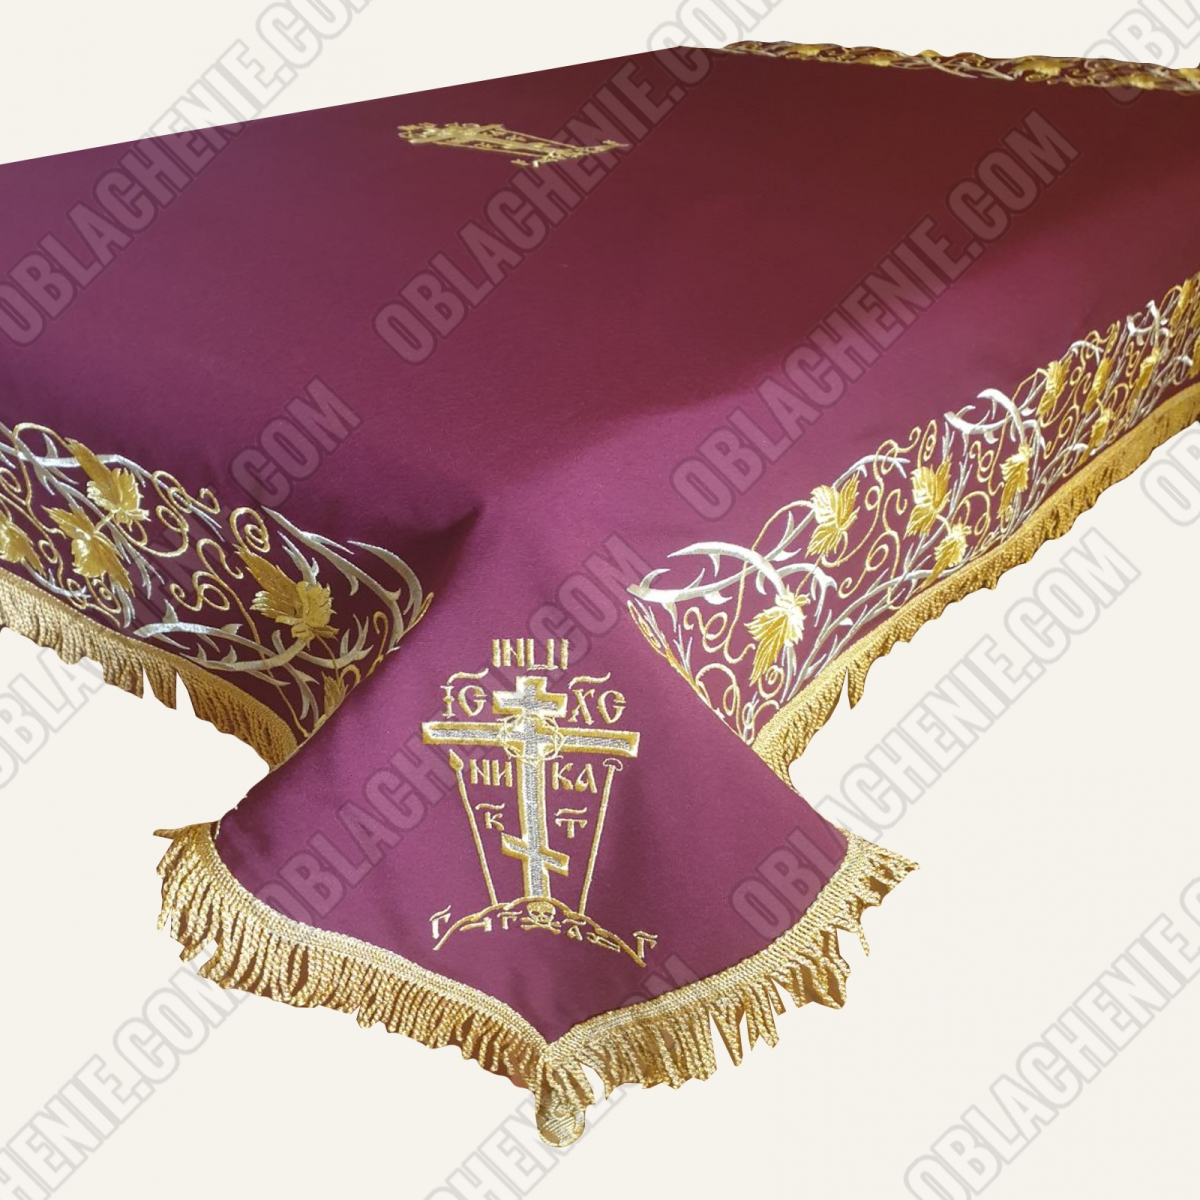 HOLY TABLE VESTMENTS 11372